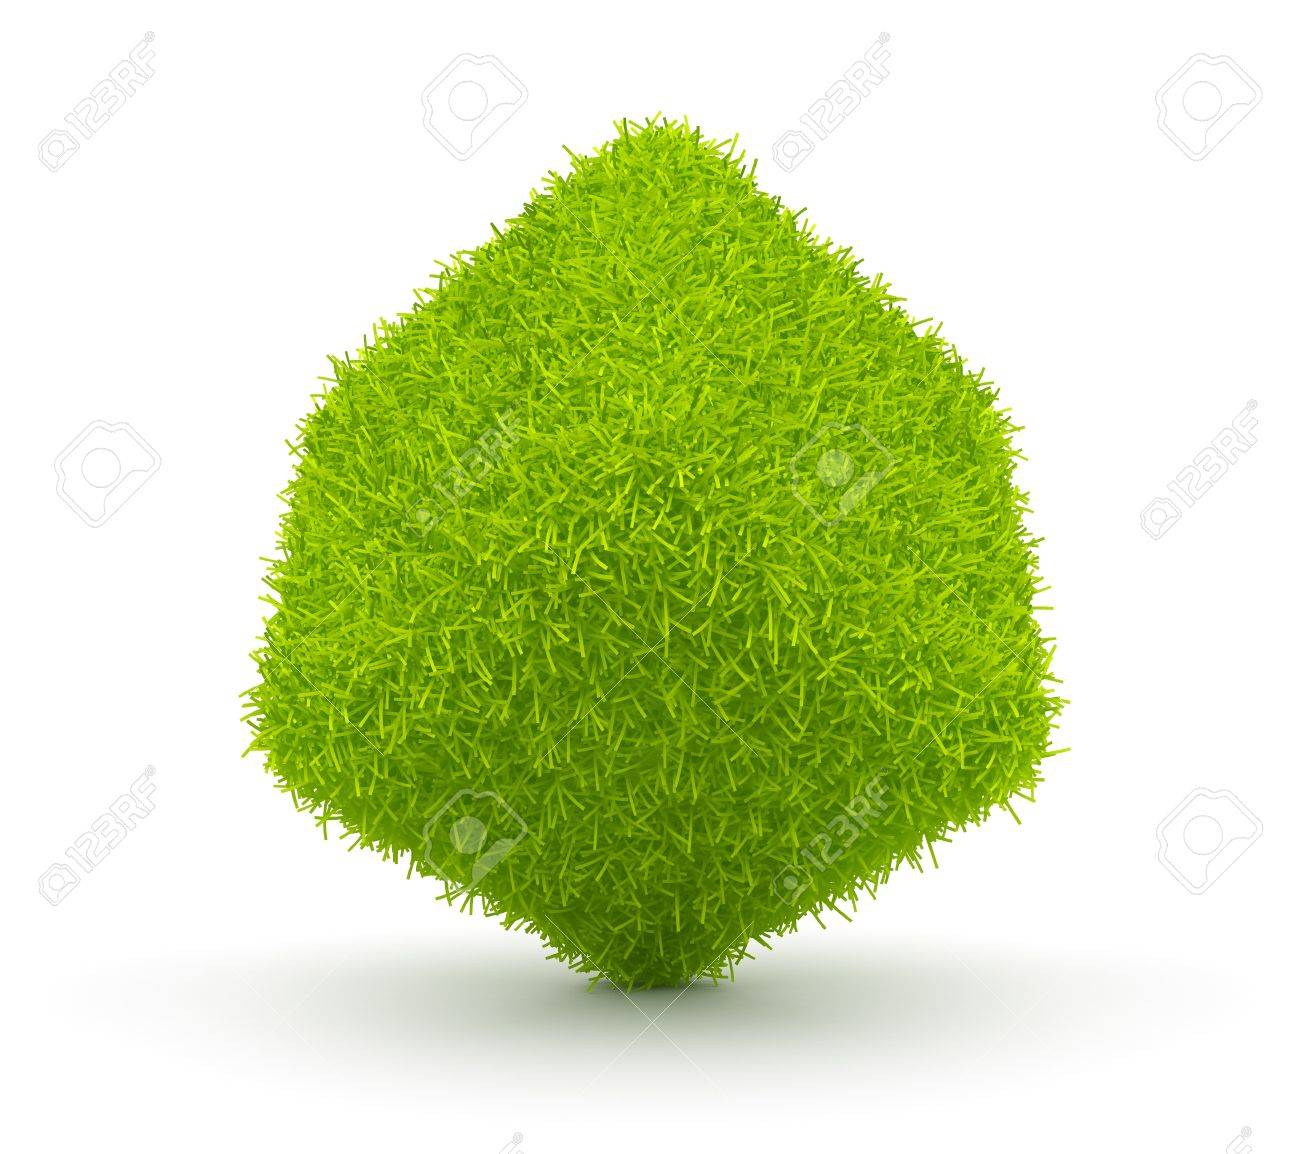 Abstract  green cube of grass 3D. Environment concept. Isolated on white background Stock Photo - 12780541